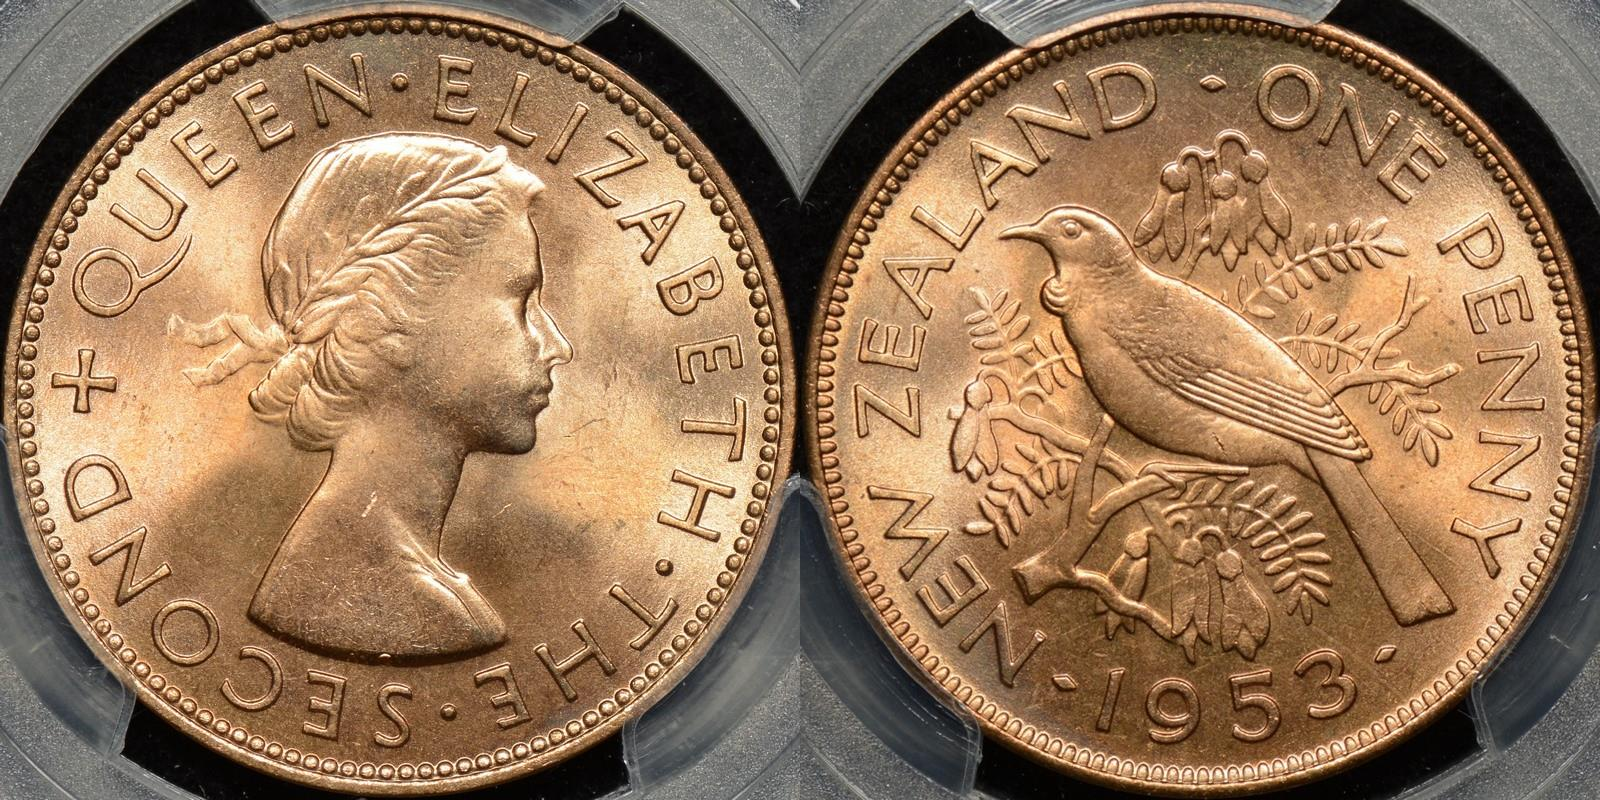 New zealand 1953 penny 1d PCGS MS65rd GEM Uncirculated red